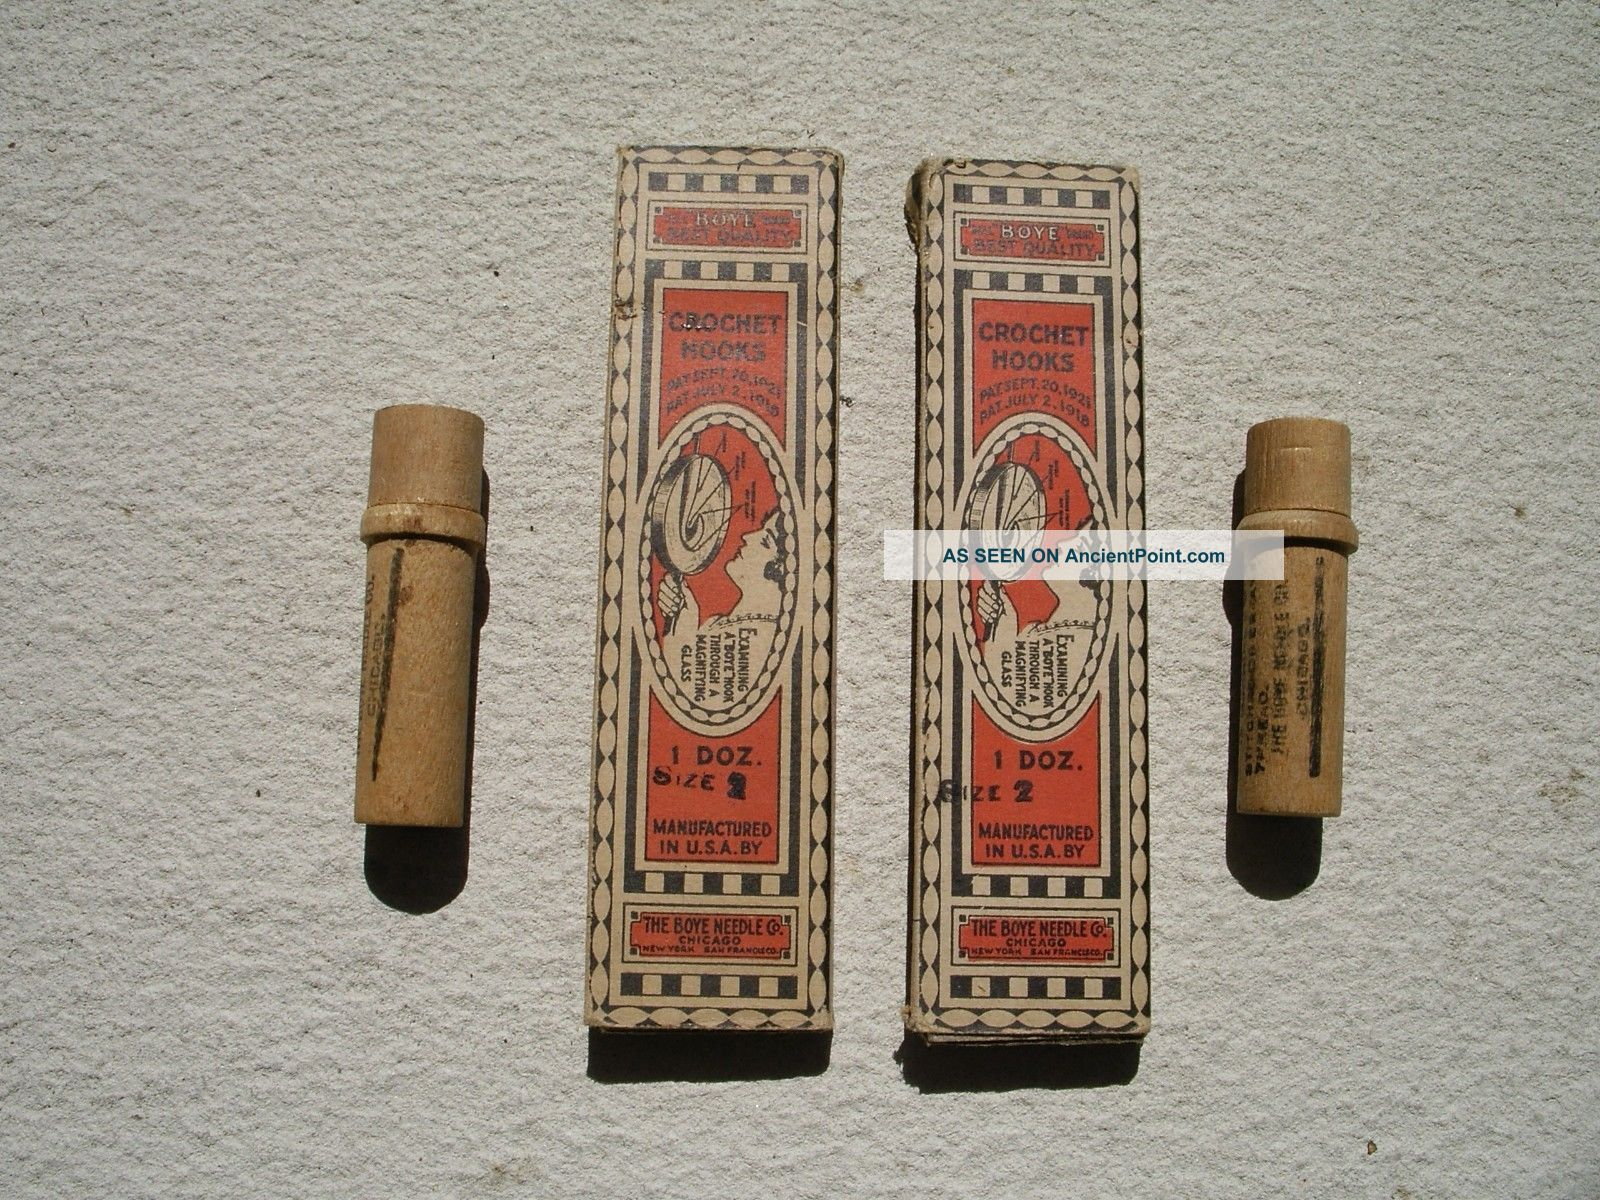 Antique Boyle Needle Company Crochet Hooks In Cases Wooden Needle Cases Needles & Cases photo